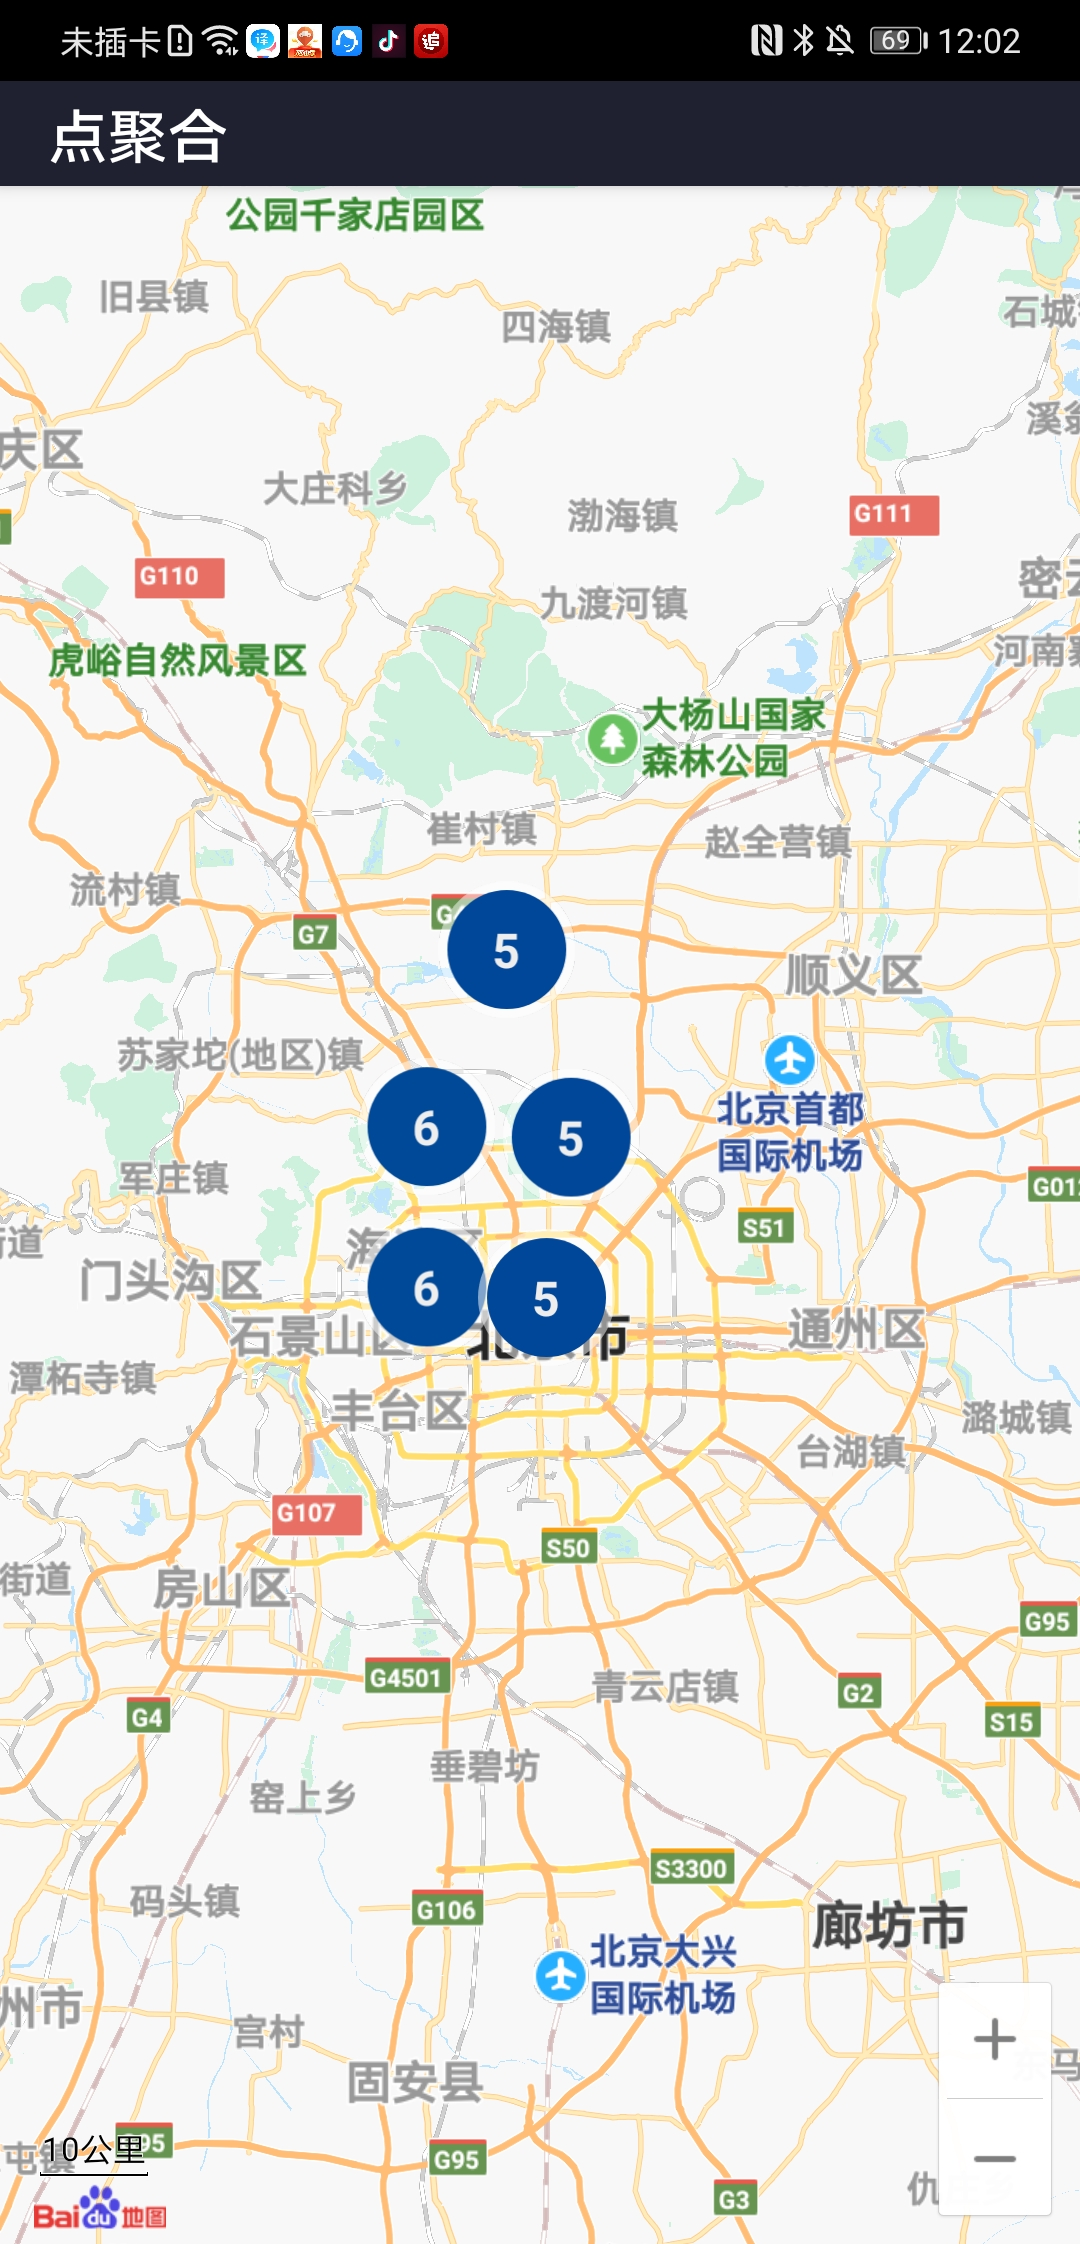 Screenshot_20200610_120203_com.baidu.mapsdkexample.jpg